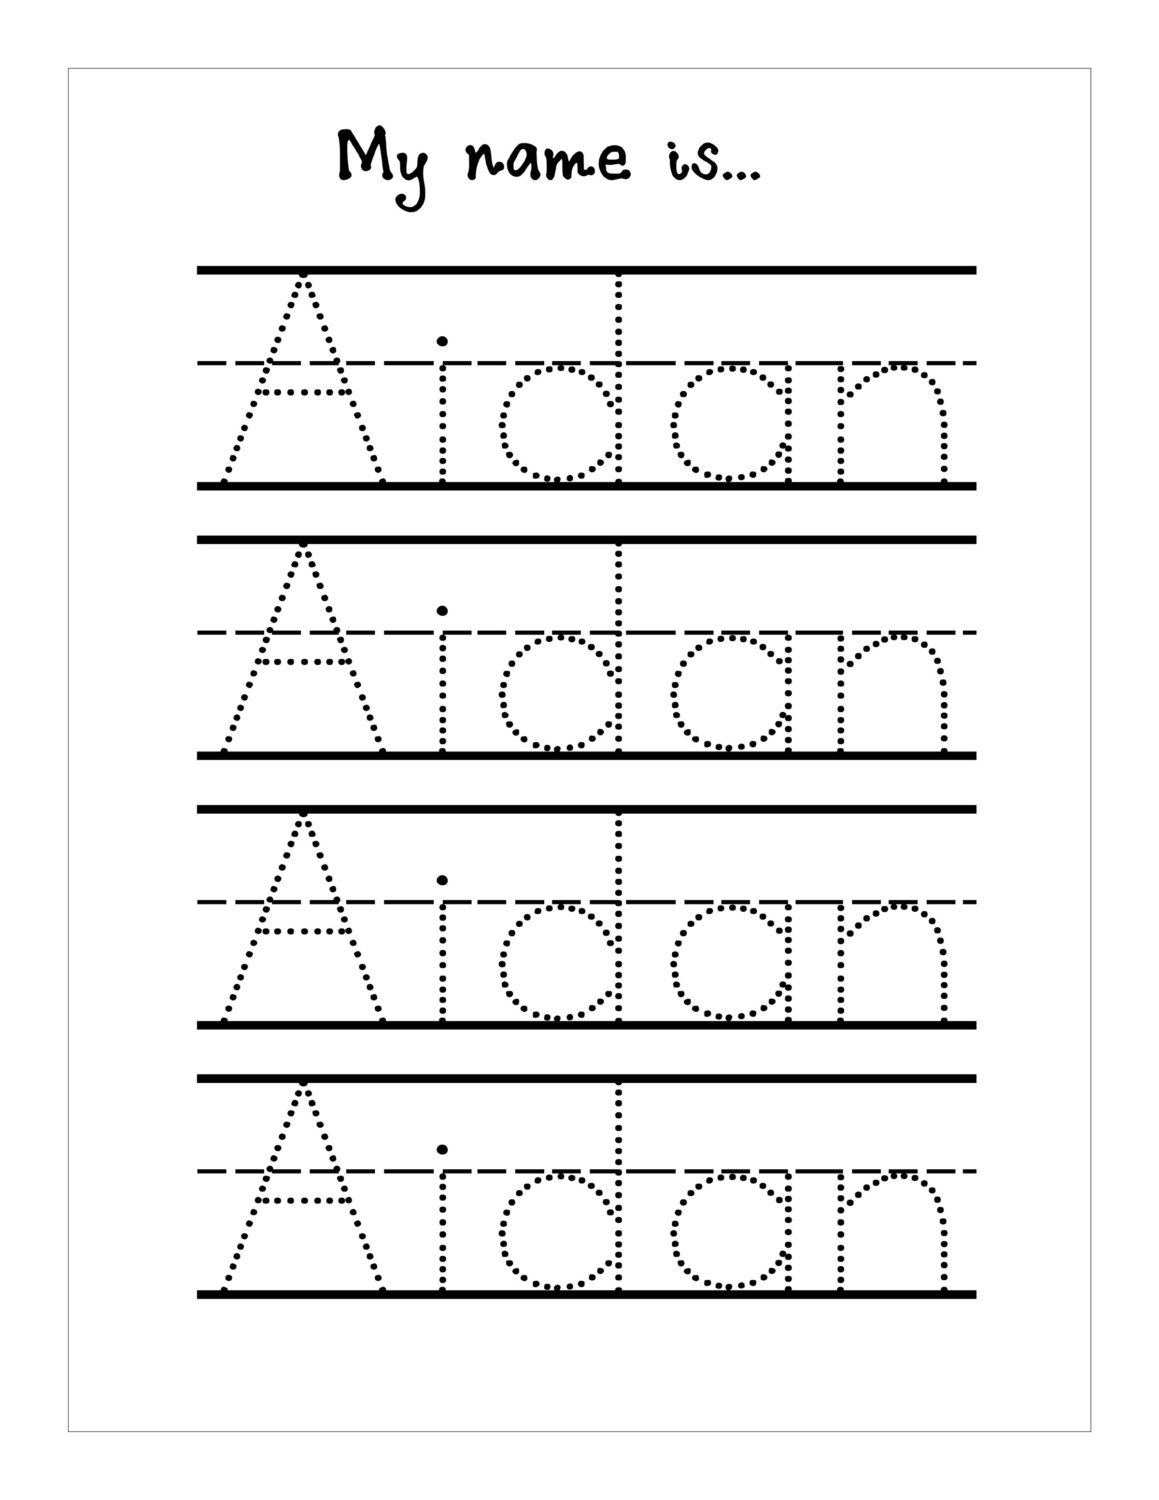 Alphabet Worksheet Creator | Printable Worksheets And within Name Tracing Worksheet Creator